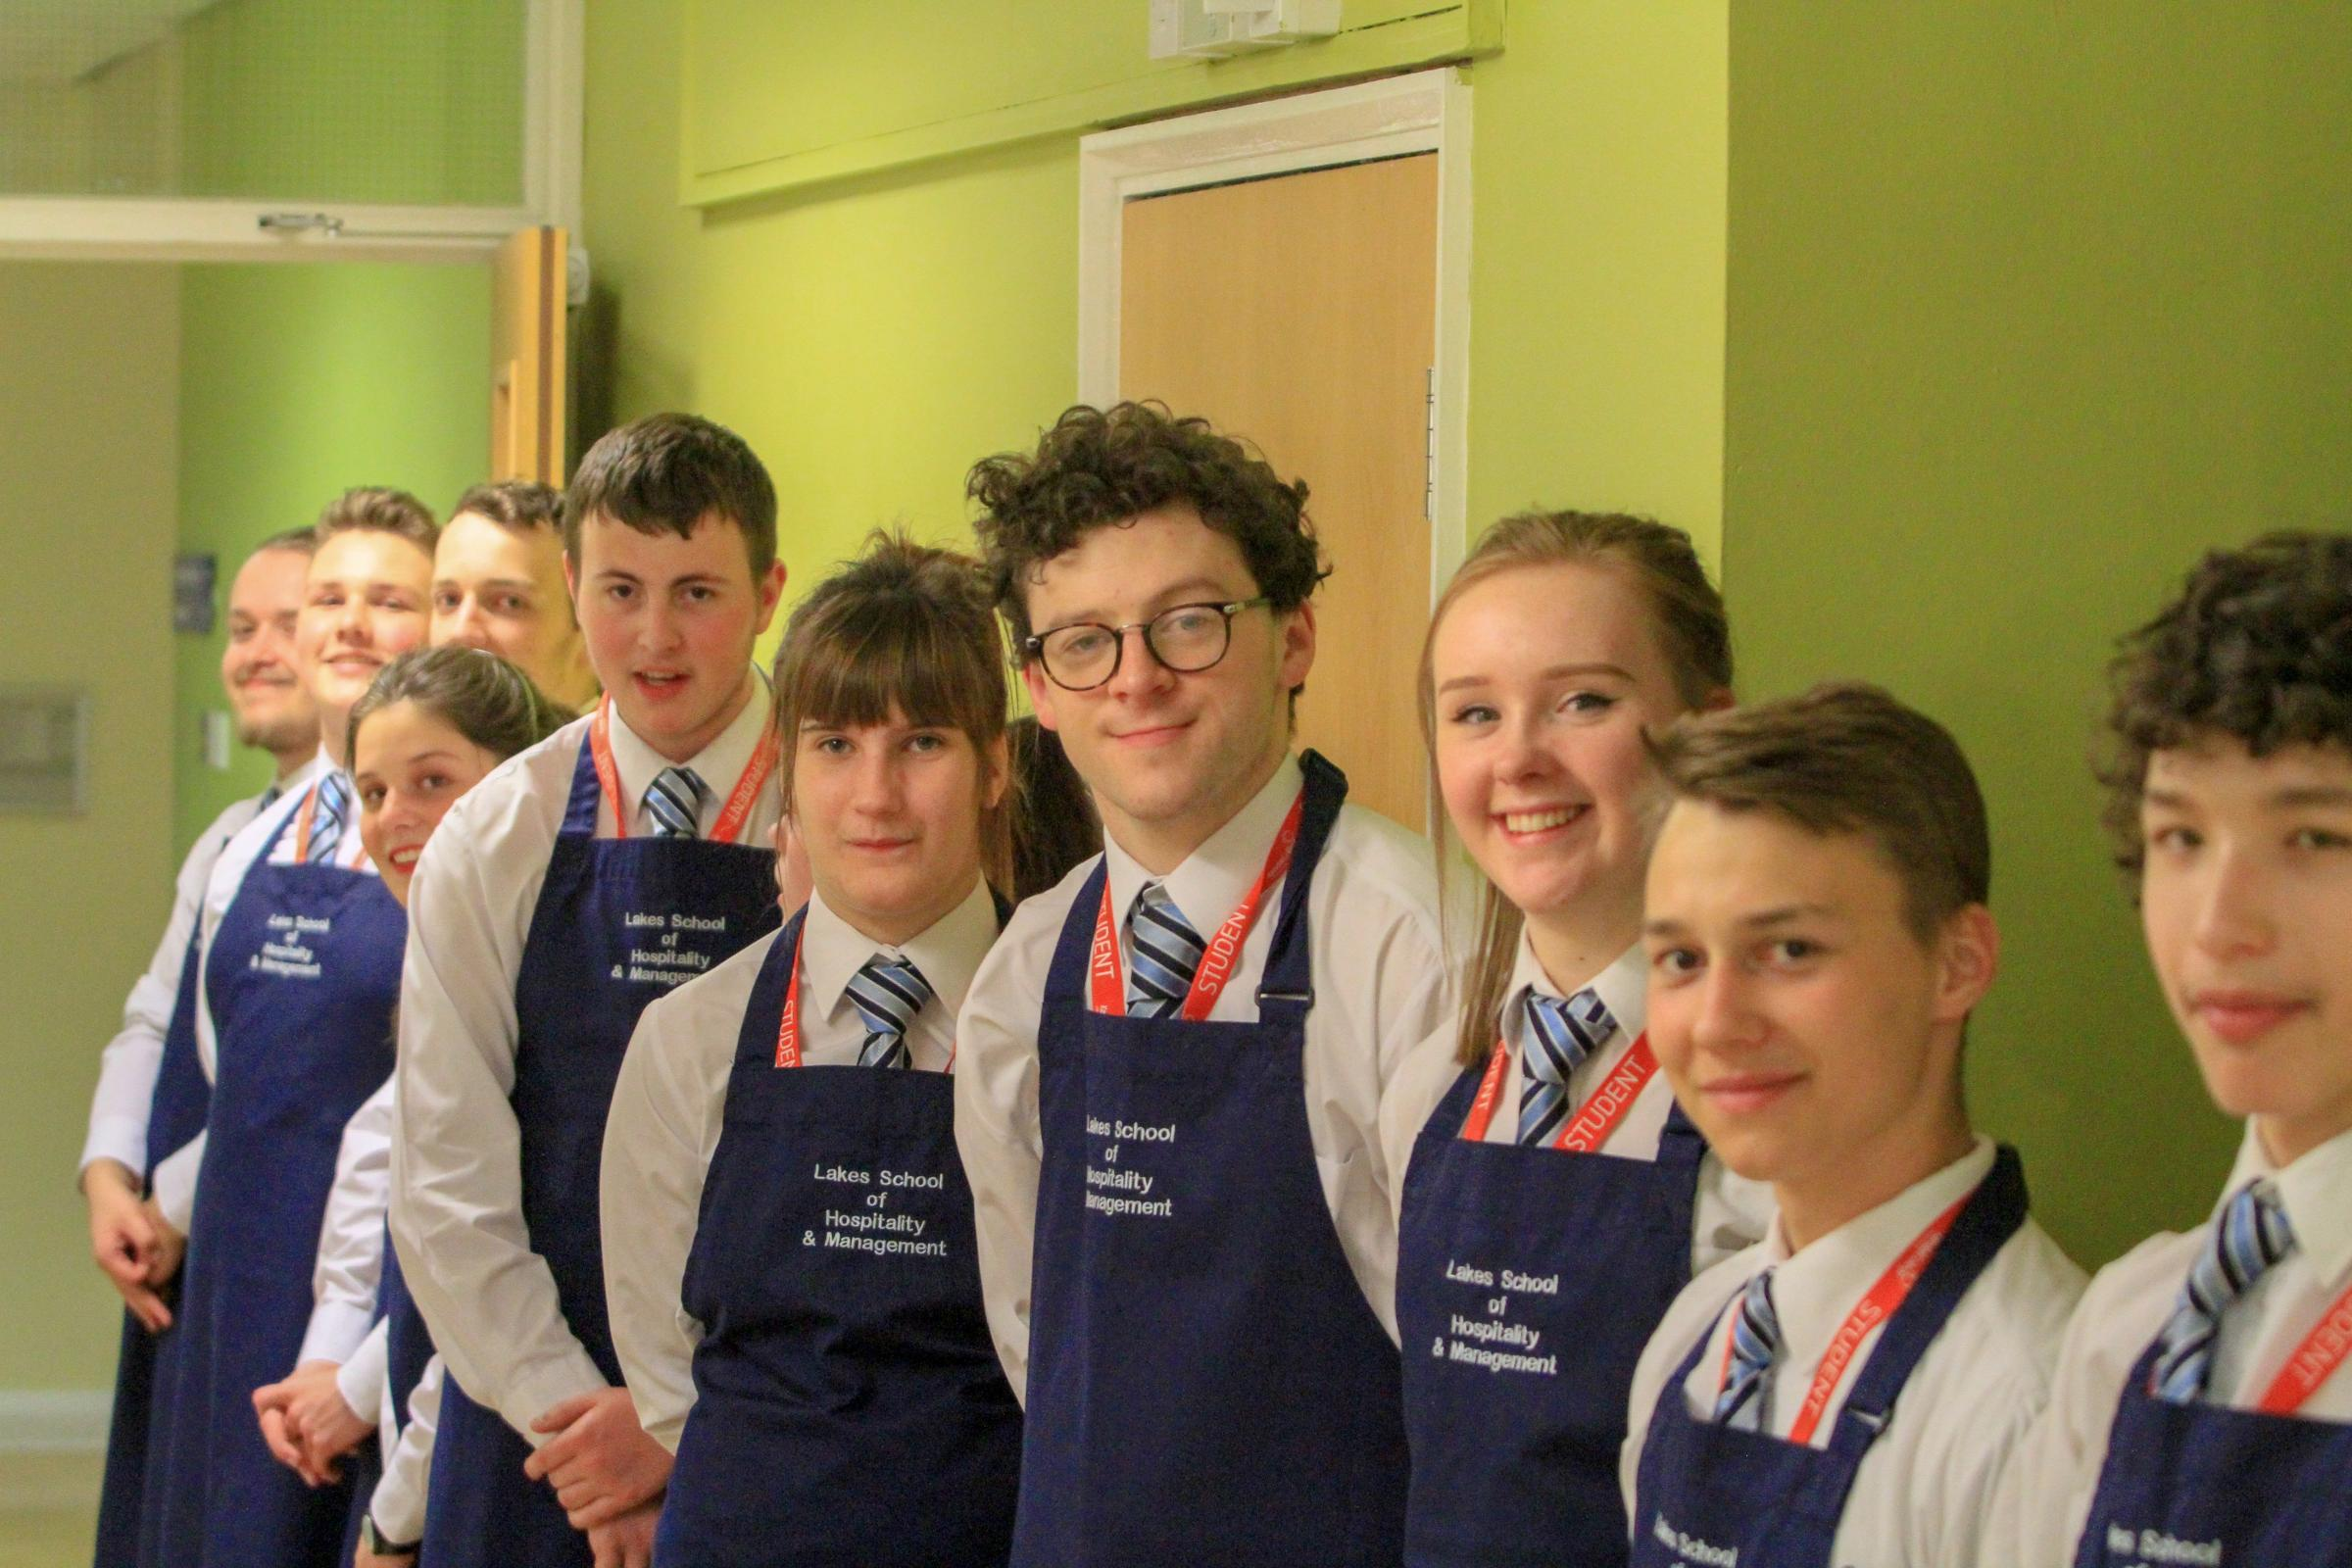 Students from Kendal College Leisure and Hospitality Front of House Team